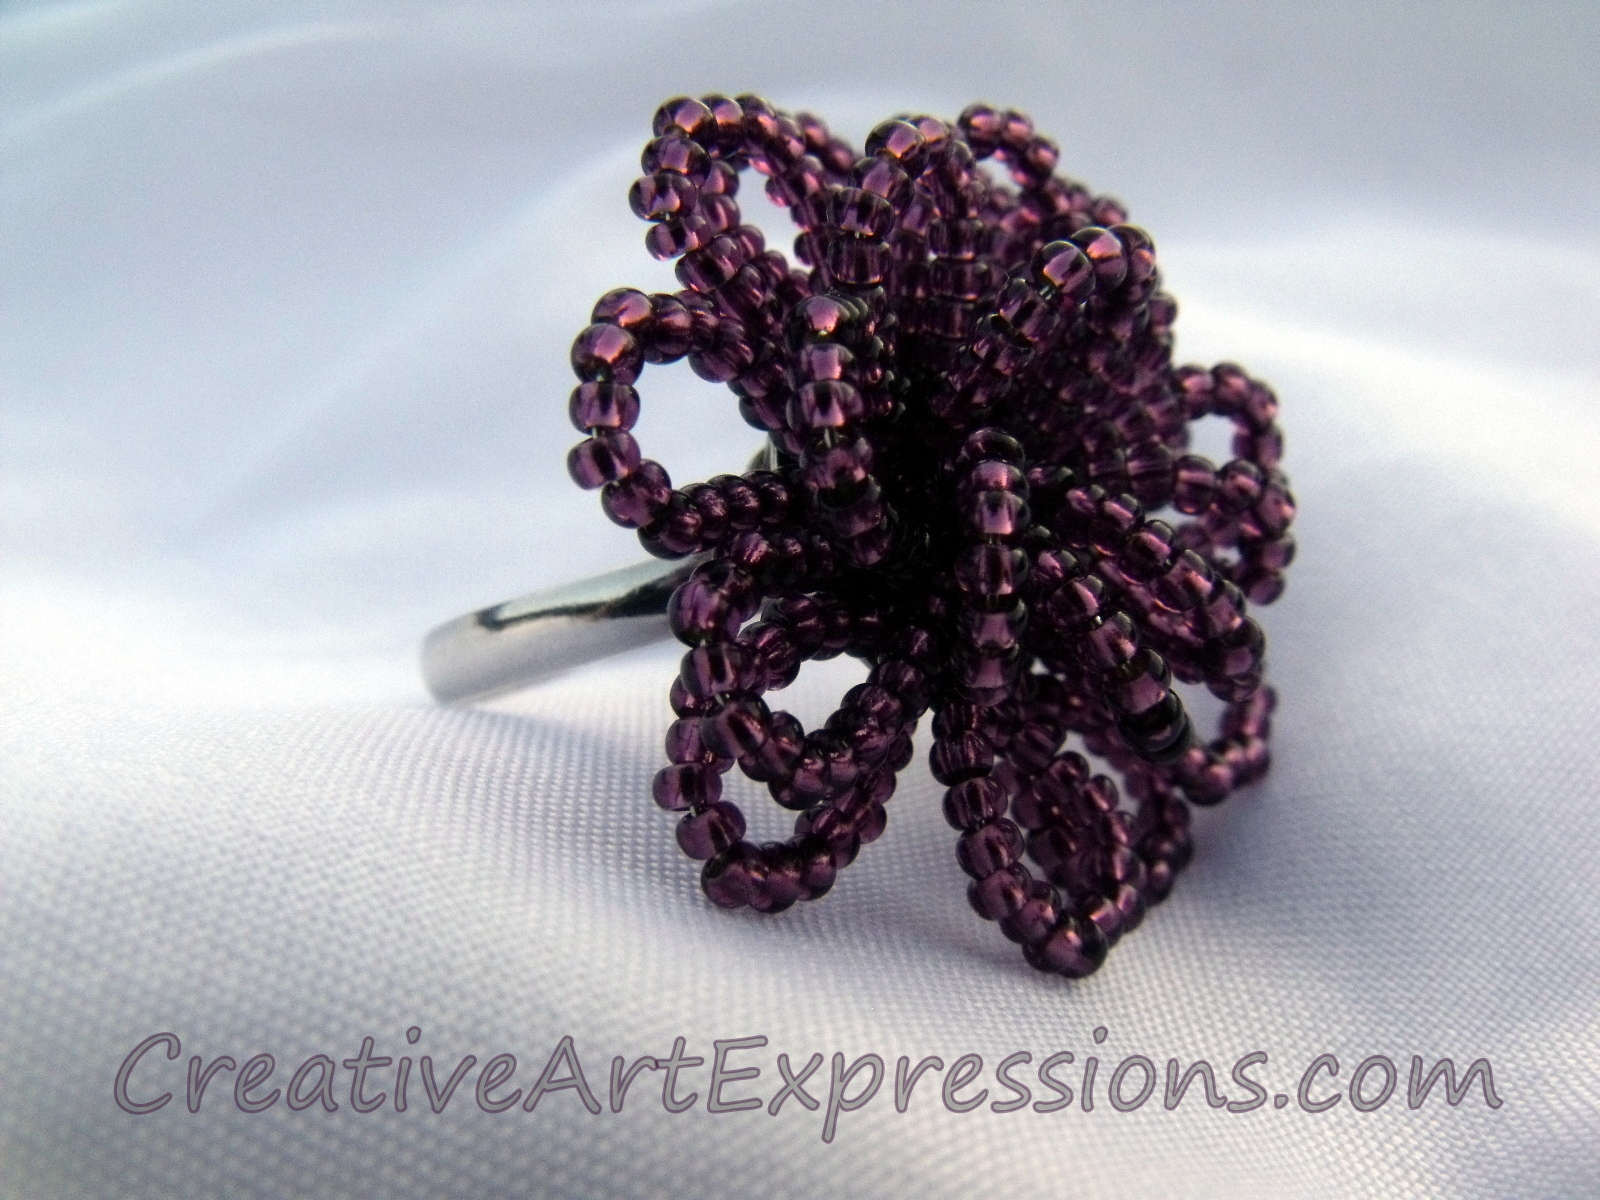 Creative Art Expressions Handmade Amethyst Seed Bead